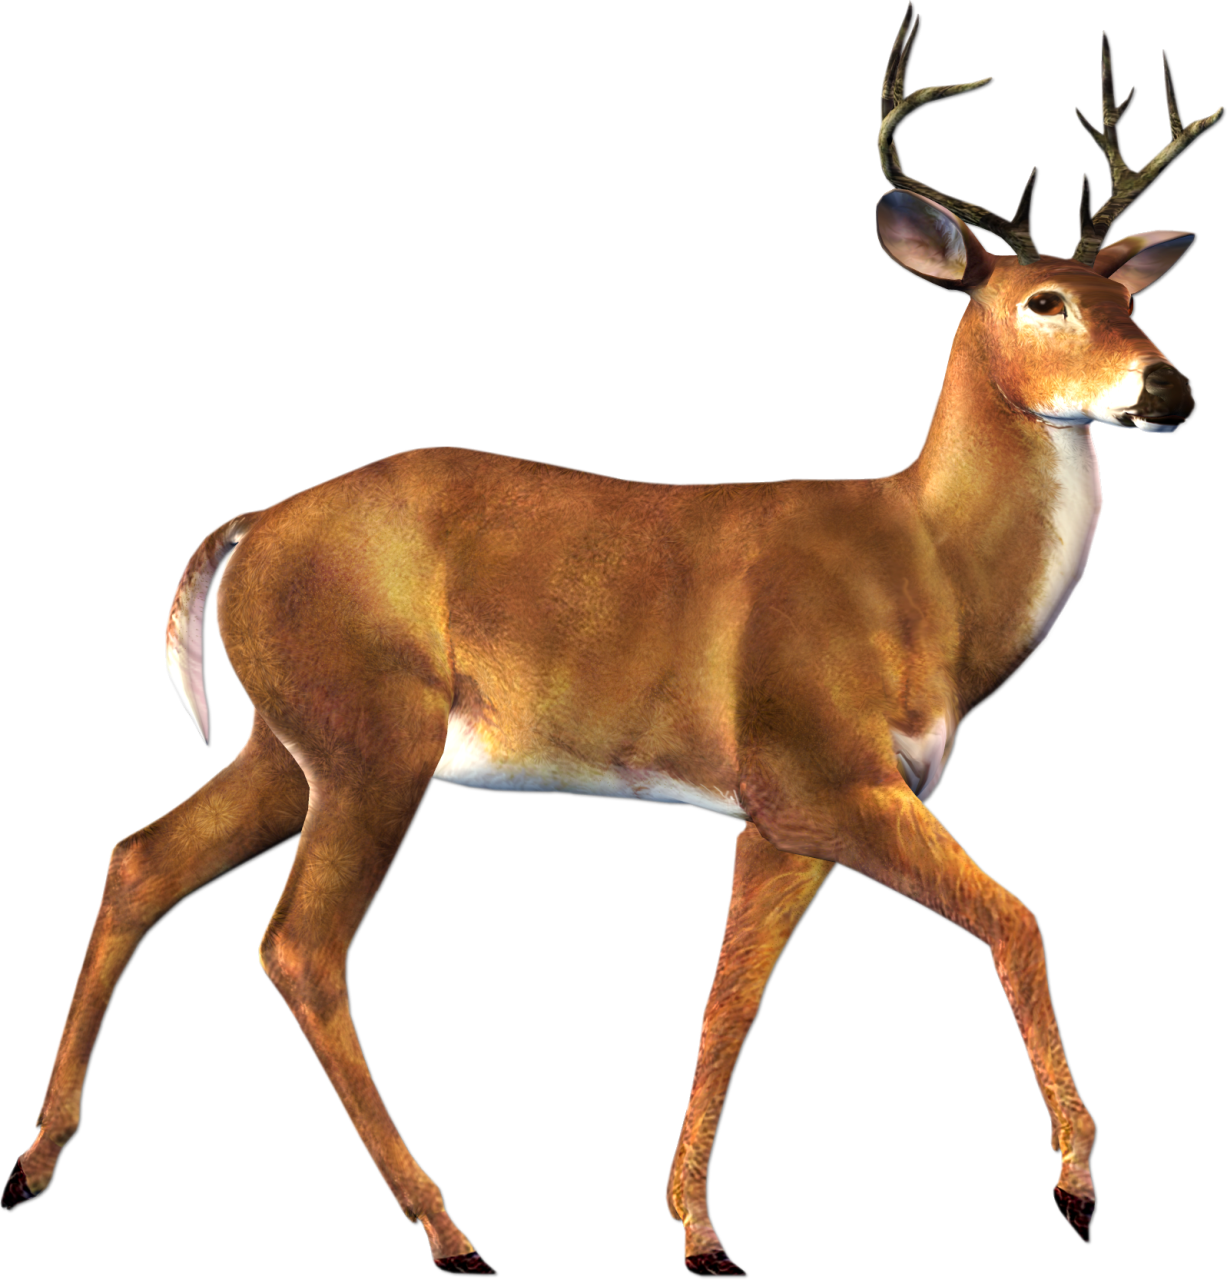 Png animal. Real transparent images pluspng